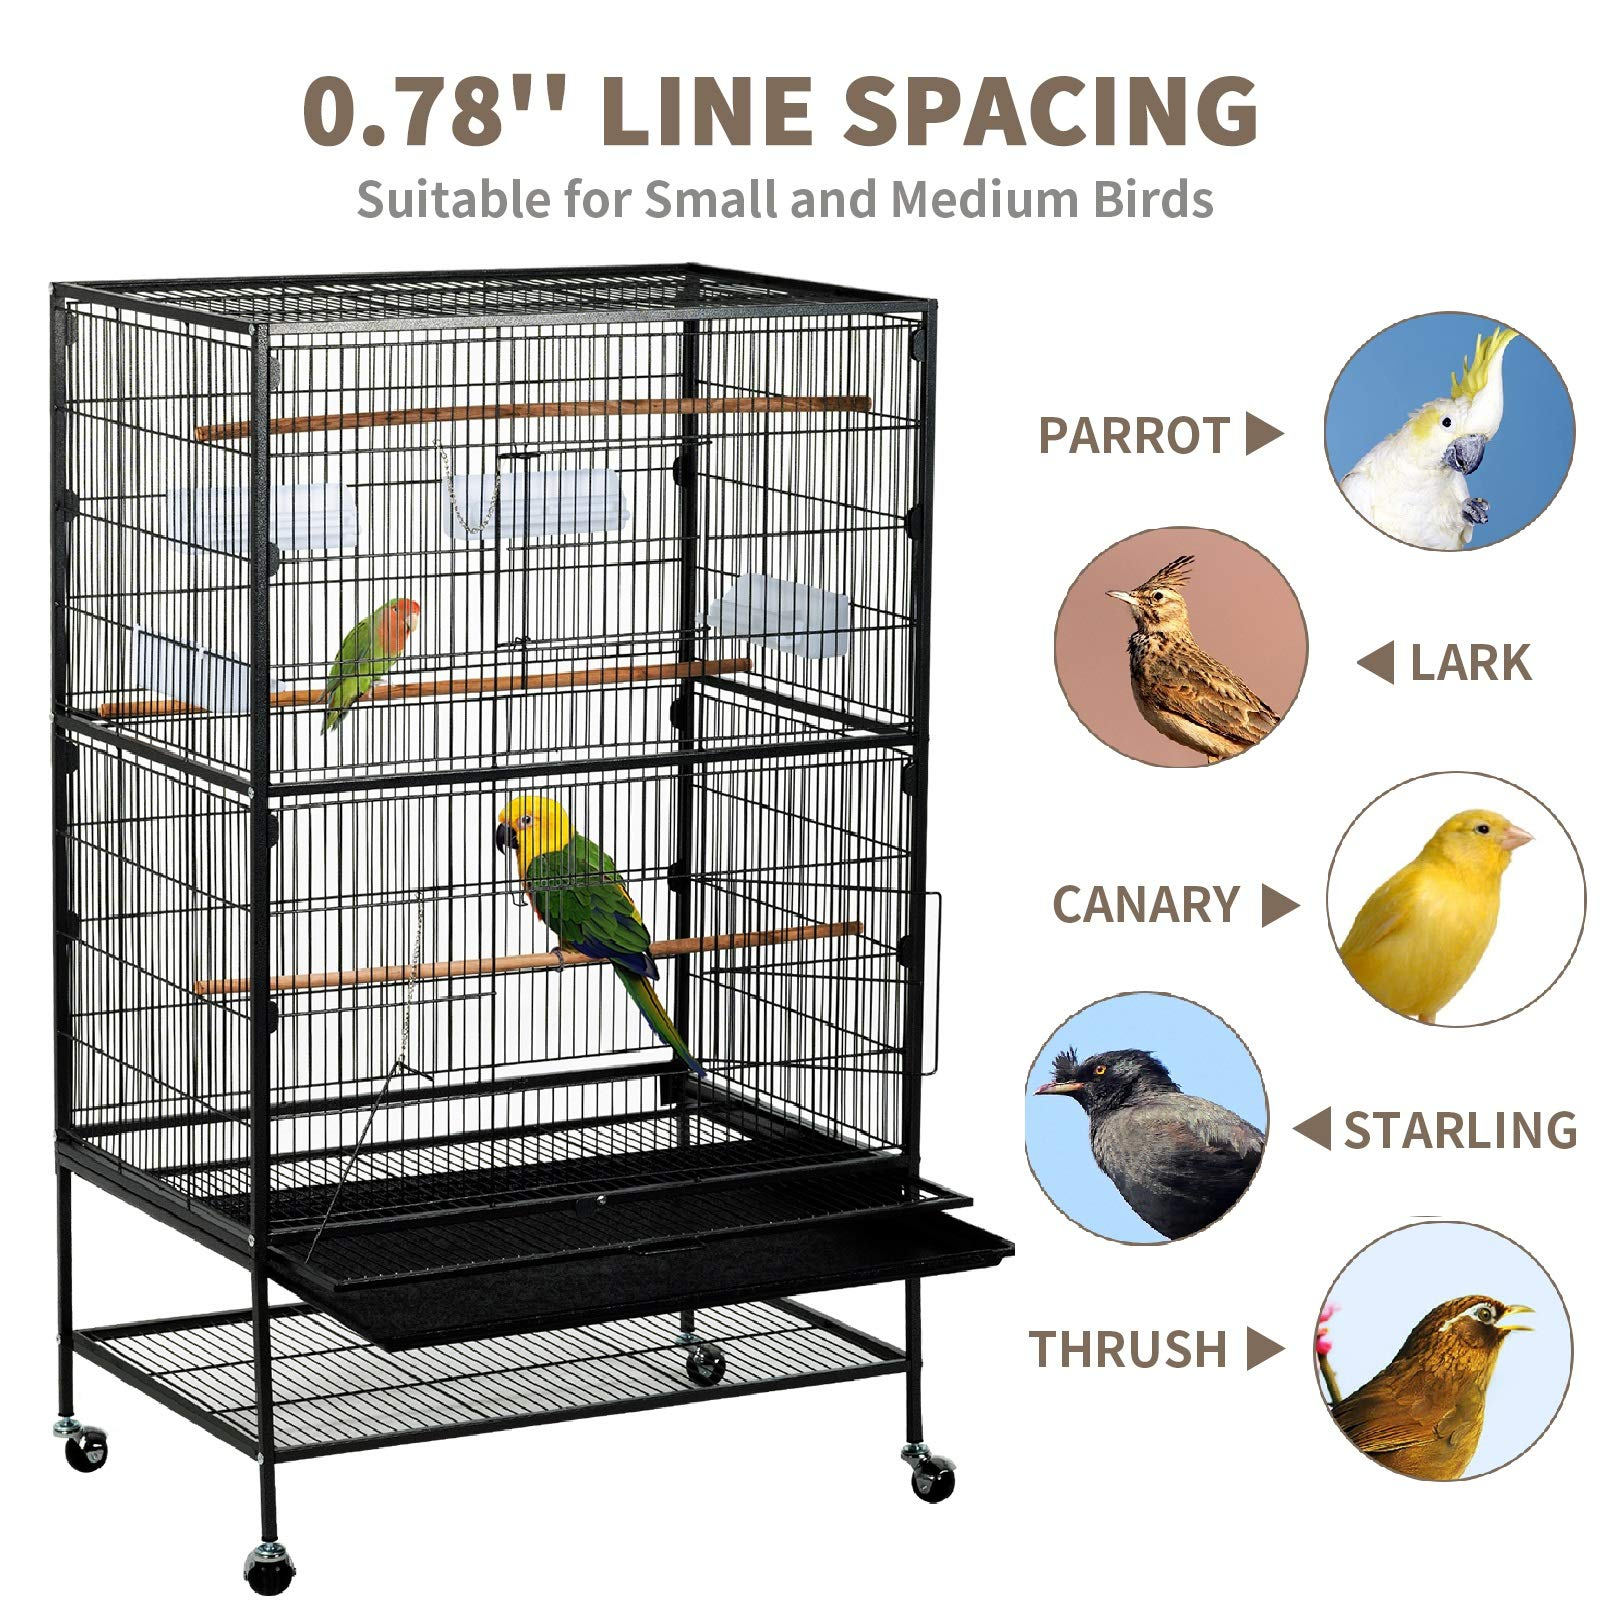 SUNCOO 53 Inch Large Bird Cage Wrought Iron Heavy Duty Flight Cage for Sugar Glider Parrot Budgie Parakeet Cockatoo with Wooden Perch Storage Shelf Rolling Stand Wheels, Bird Aviary Cage Black by SUNCOO